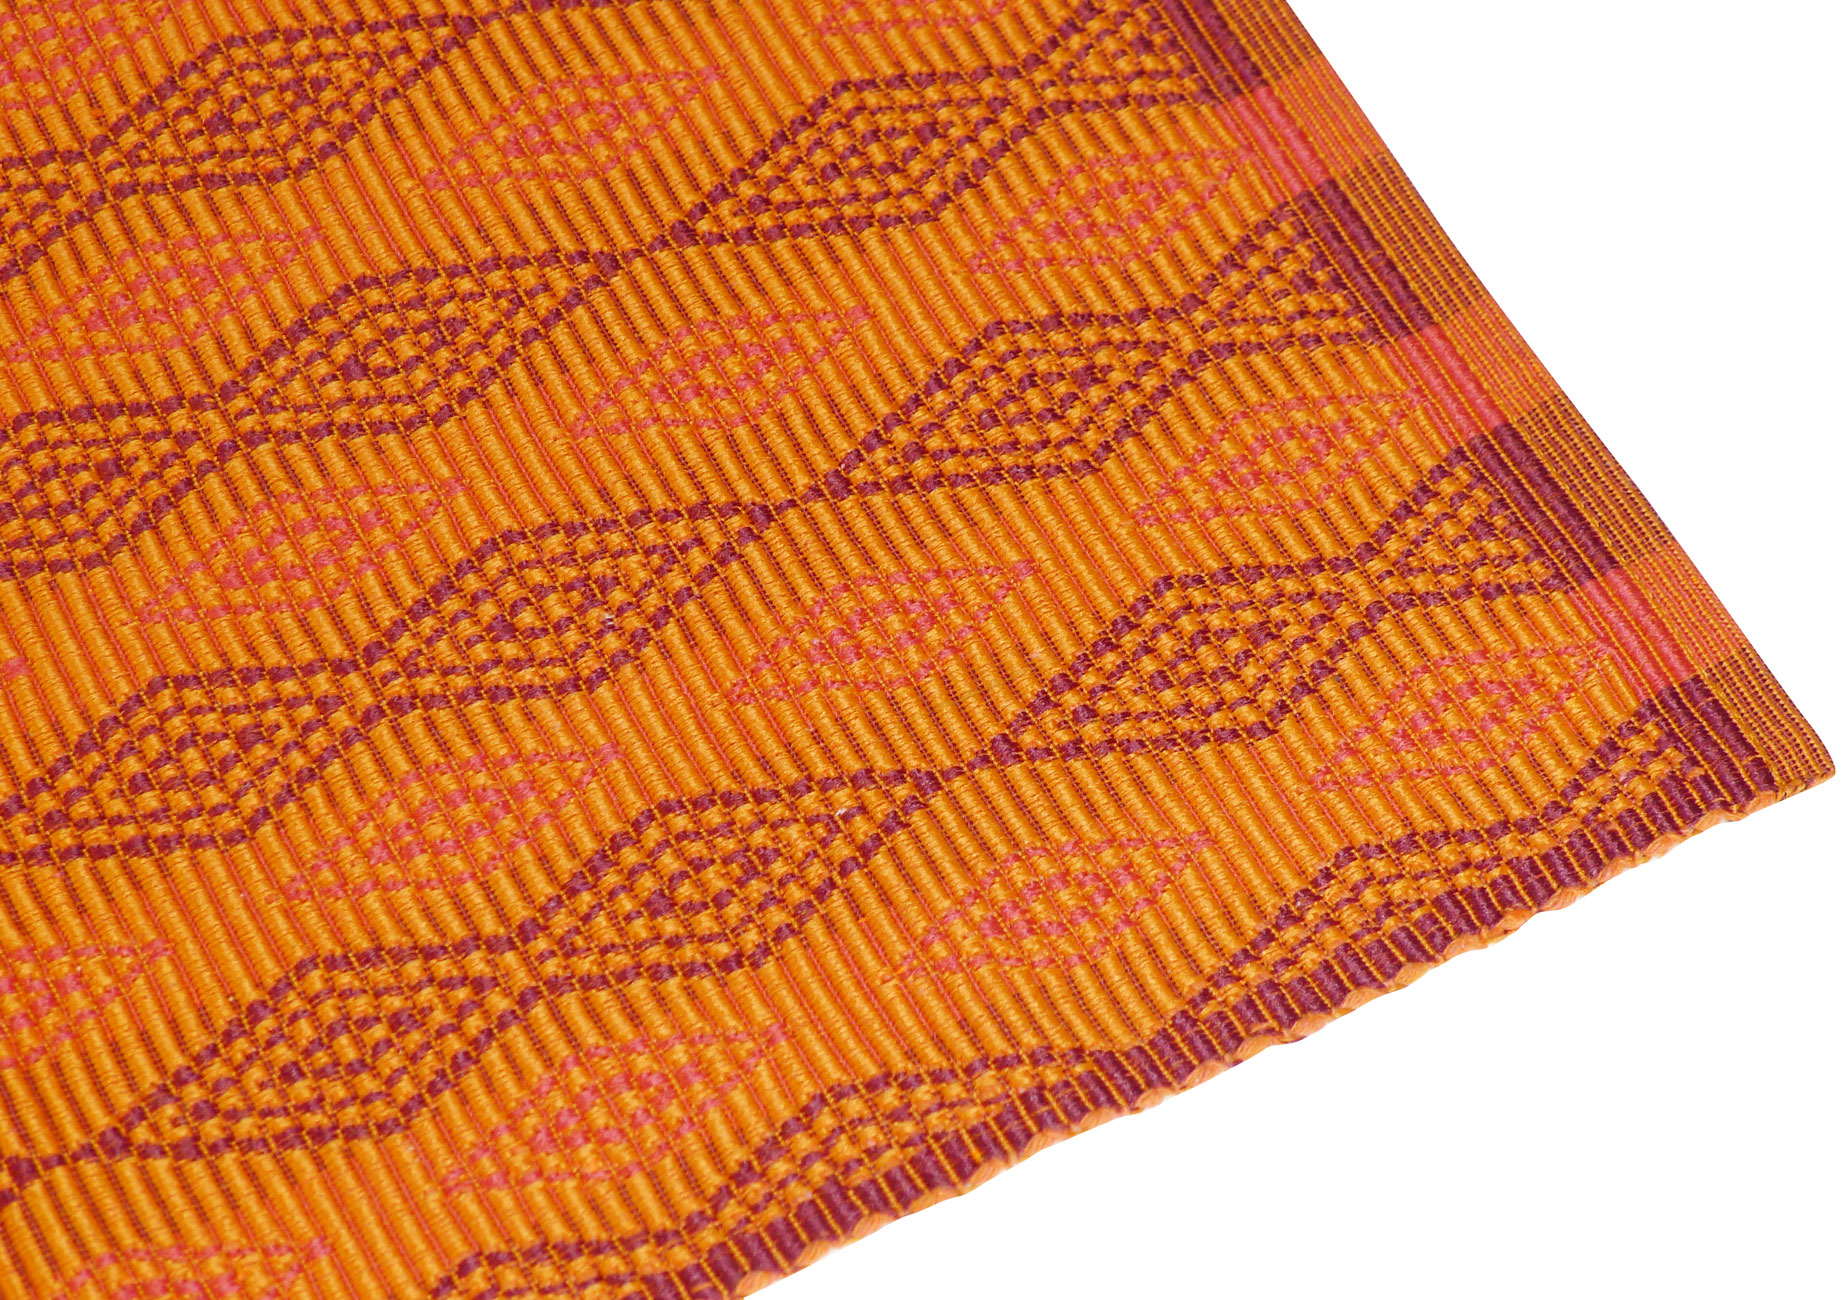 Image of Spiceberry Cotton Placemats - Moroccan Diamond Pattern - Set of 4